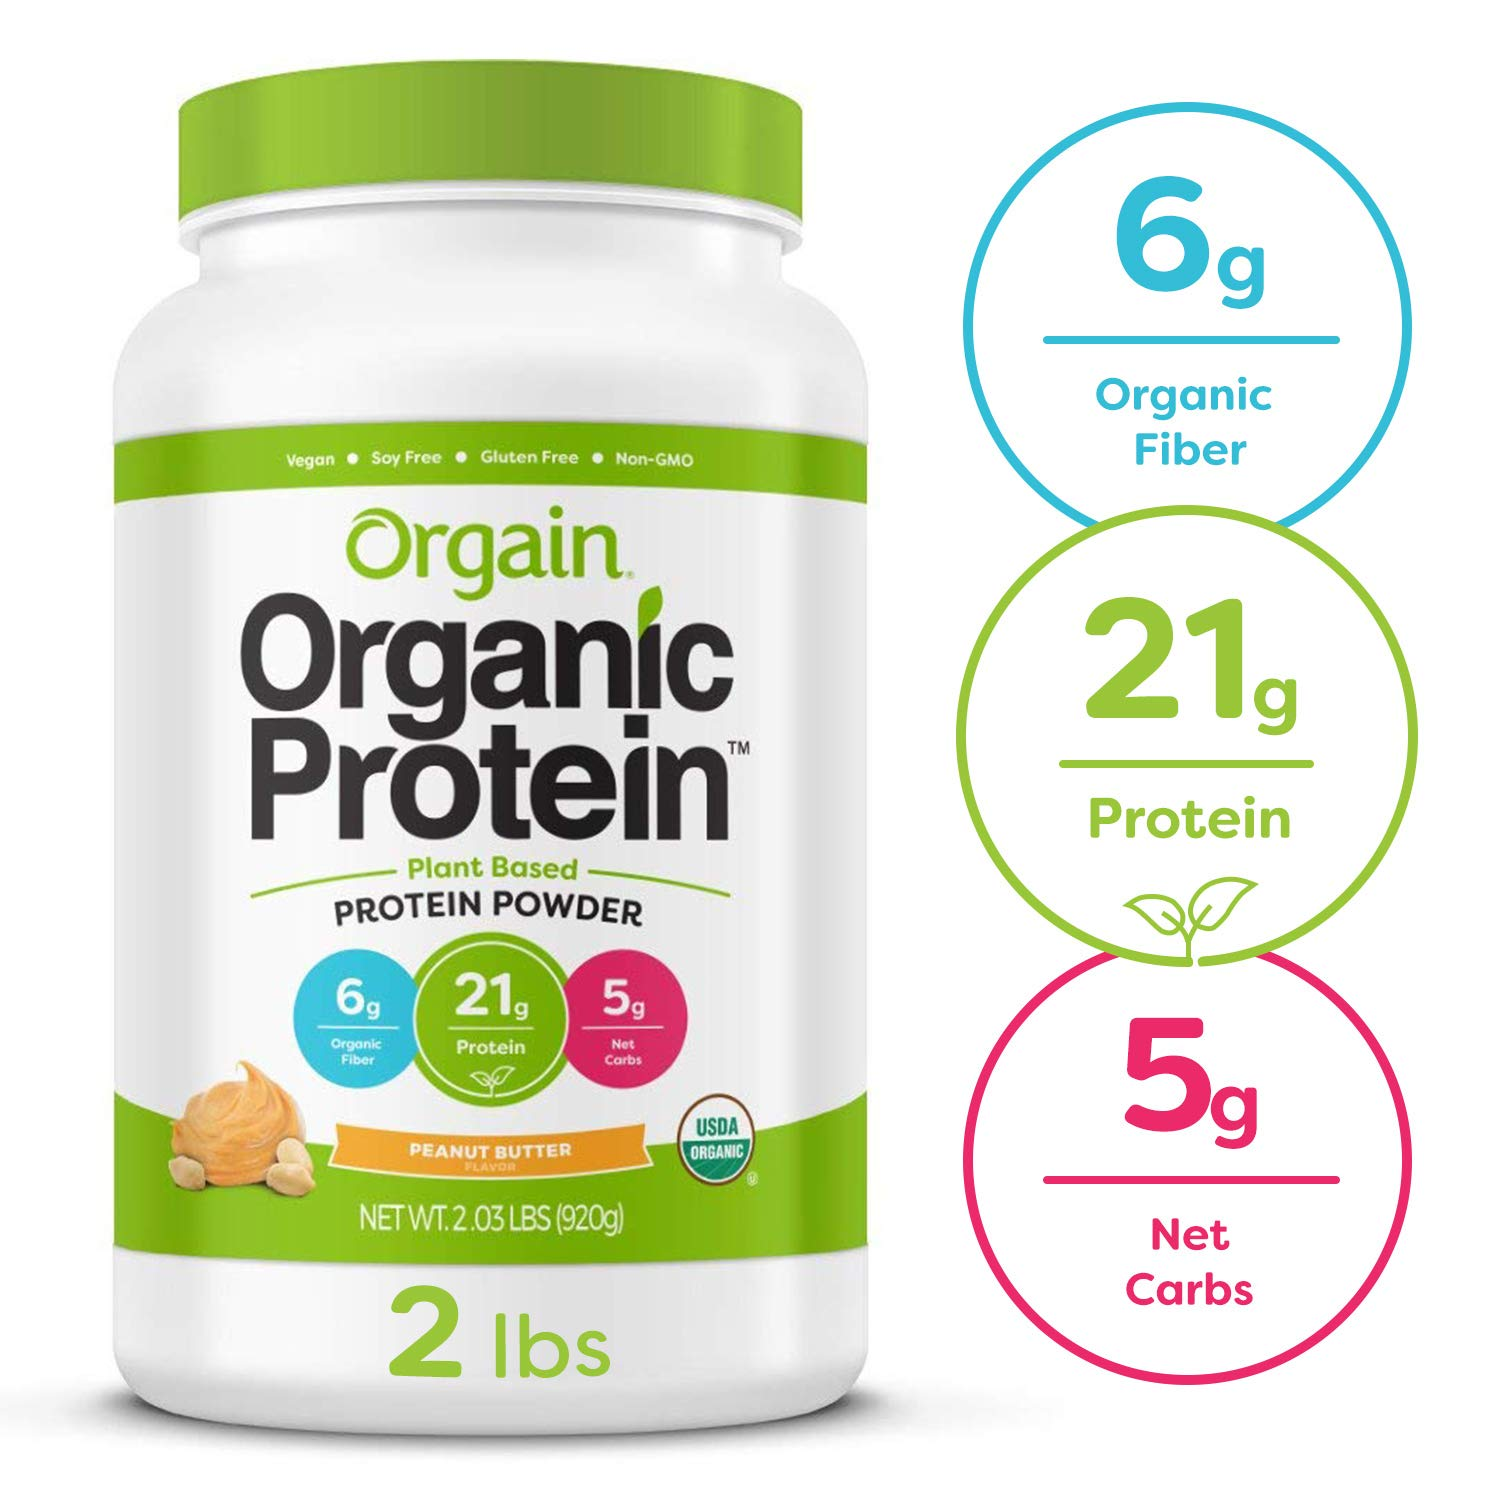 Orgain Organic Plant Based Protein Powder, Peanut Butter - Vegan, Low Net Carbs, Non Dairy, Gluten Free, Lactose Free, No Sugar Added, Soy Free, Kosher, Non-GMO, 2.03 Pound by Orgain